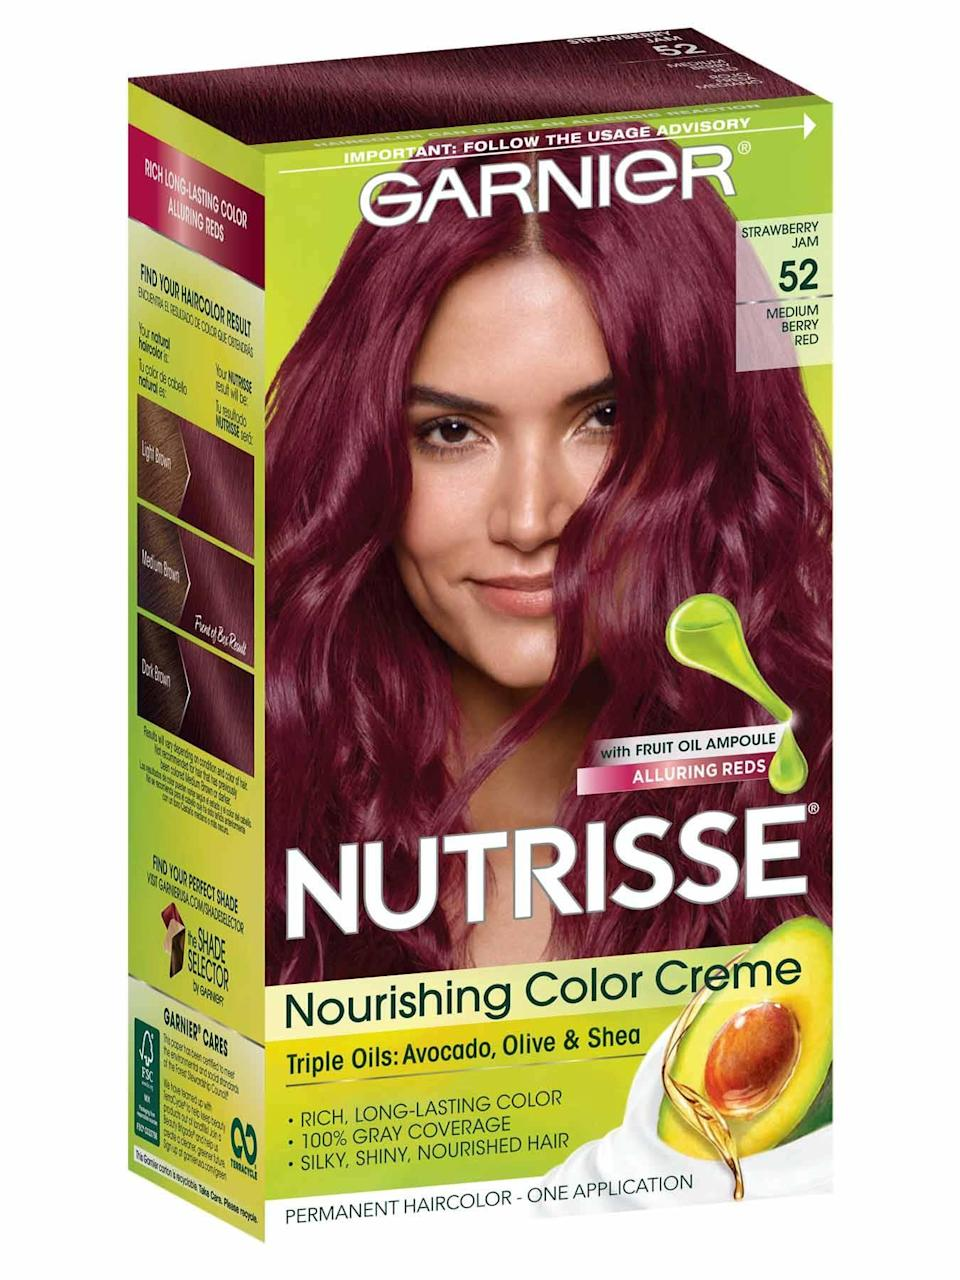 """<p>Garnier Nutrisse Color Crème comes in a whopping 45 shades, but this Strawberry Jam shade in particular is perfect for people who'd rather try a deeper, berry pink. Plus, the formula is infused with a hydrating blend of avocado, shea, and coconut oils to condition hair, so it grasps onto color better and for longer wear.</p> <p><strong>$7</strong> (<a href=""""https://www.amazon.com/Garnier-Nutrisse-Nourishing-Strawberry-Medium/dp/B07KJ4RTW9"""" rel=""""nofollow noopener"""" target=""""_blank"""" data-ylk=""""slk:Shop Now"""" class=""""link rapid-noclick-resp"""">Shop Now</a>)</p>"""